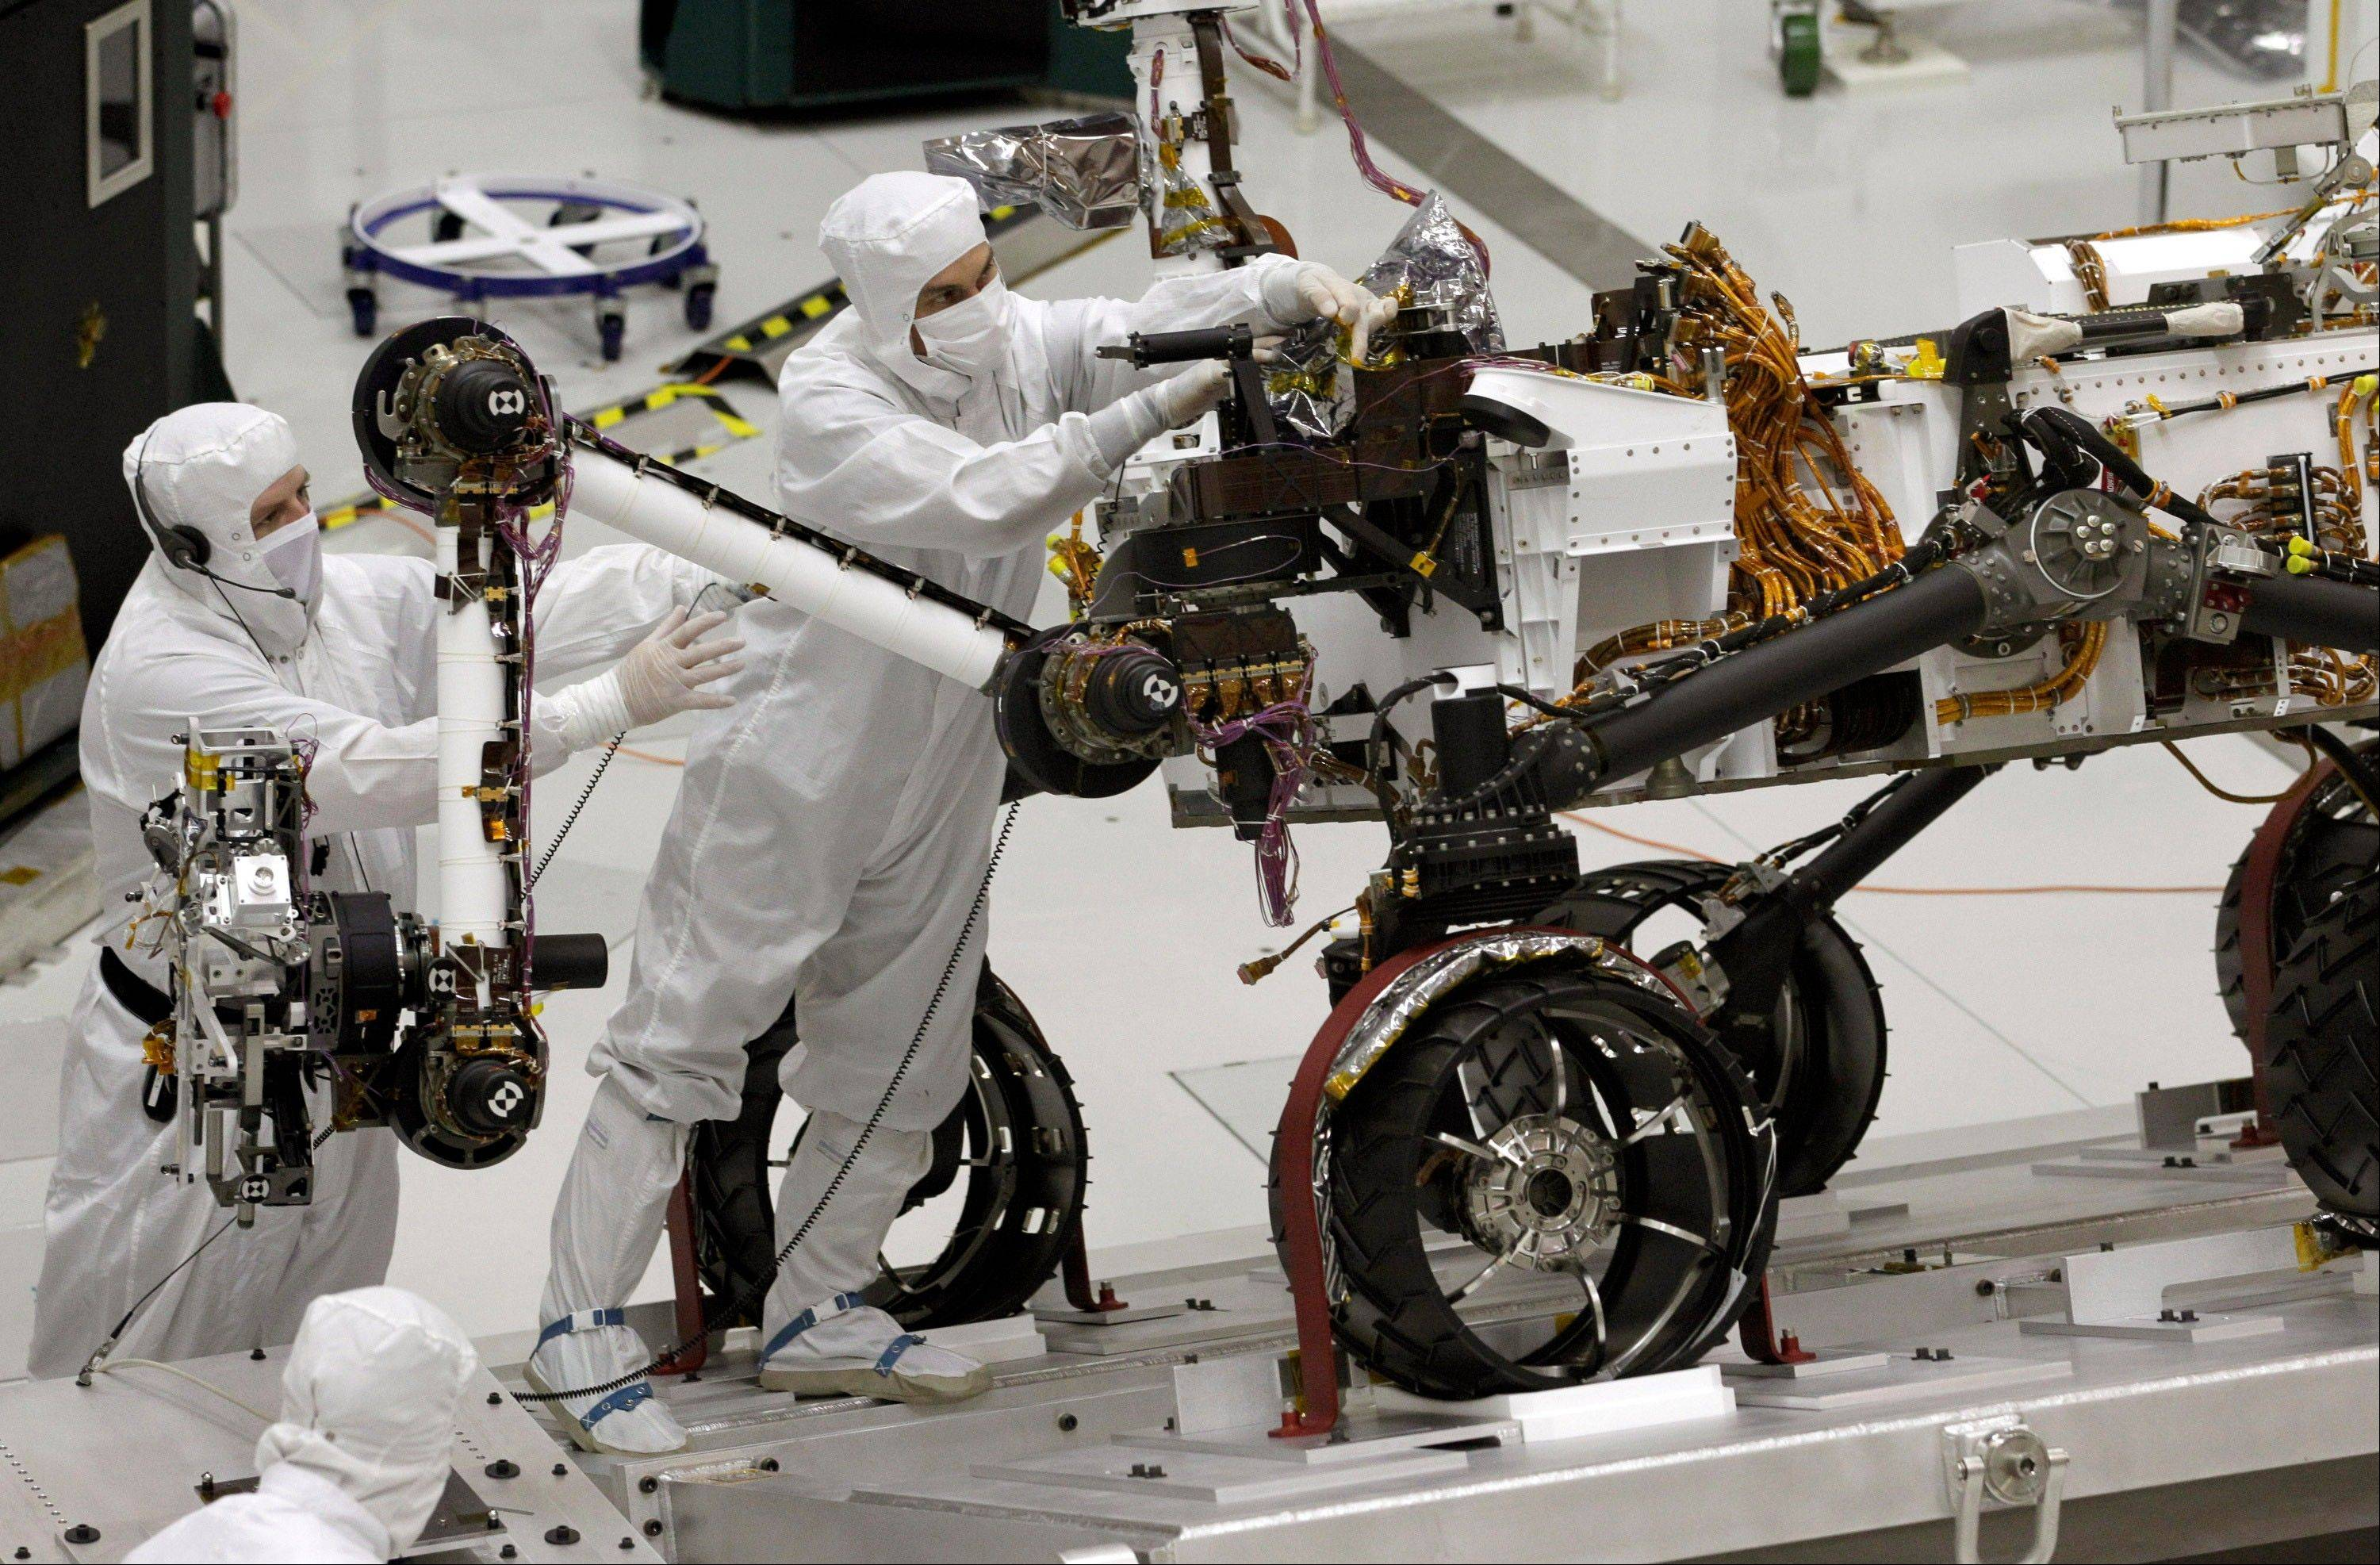 This Sept. 16, 2010 file photo shows engineers working on the Mars rover Curiosity at NASA's Jet Propulsion Laboratory in Pasadena, Calif. Curiosity celebrated its first year on Mars and is driving toward a mountain in a journey that will take months.